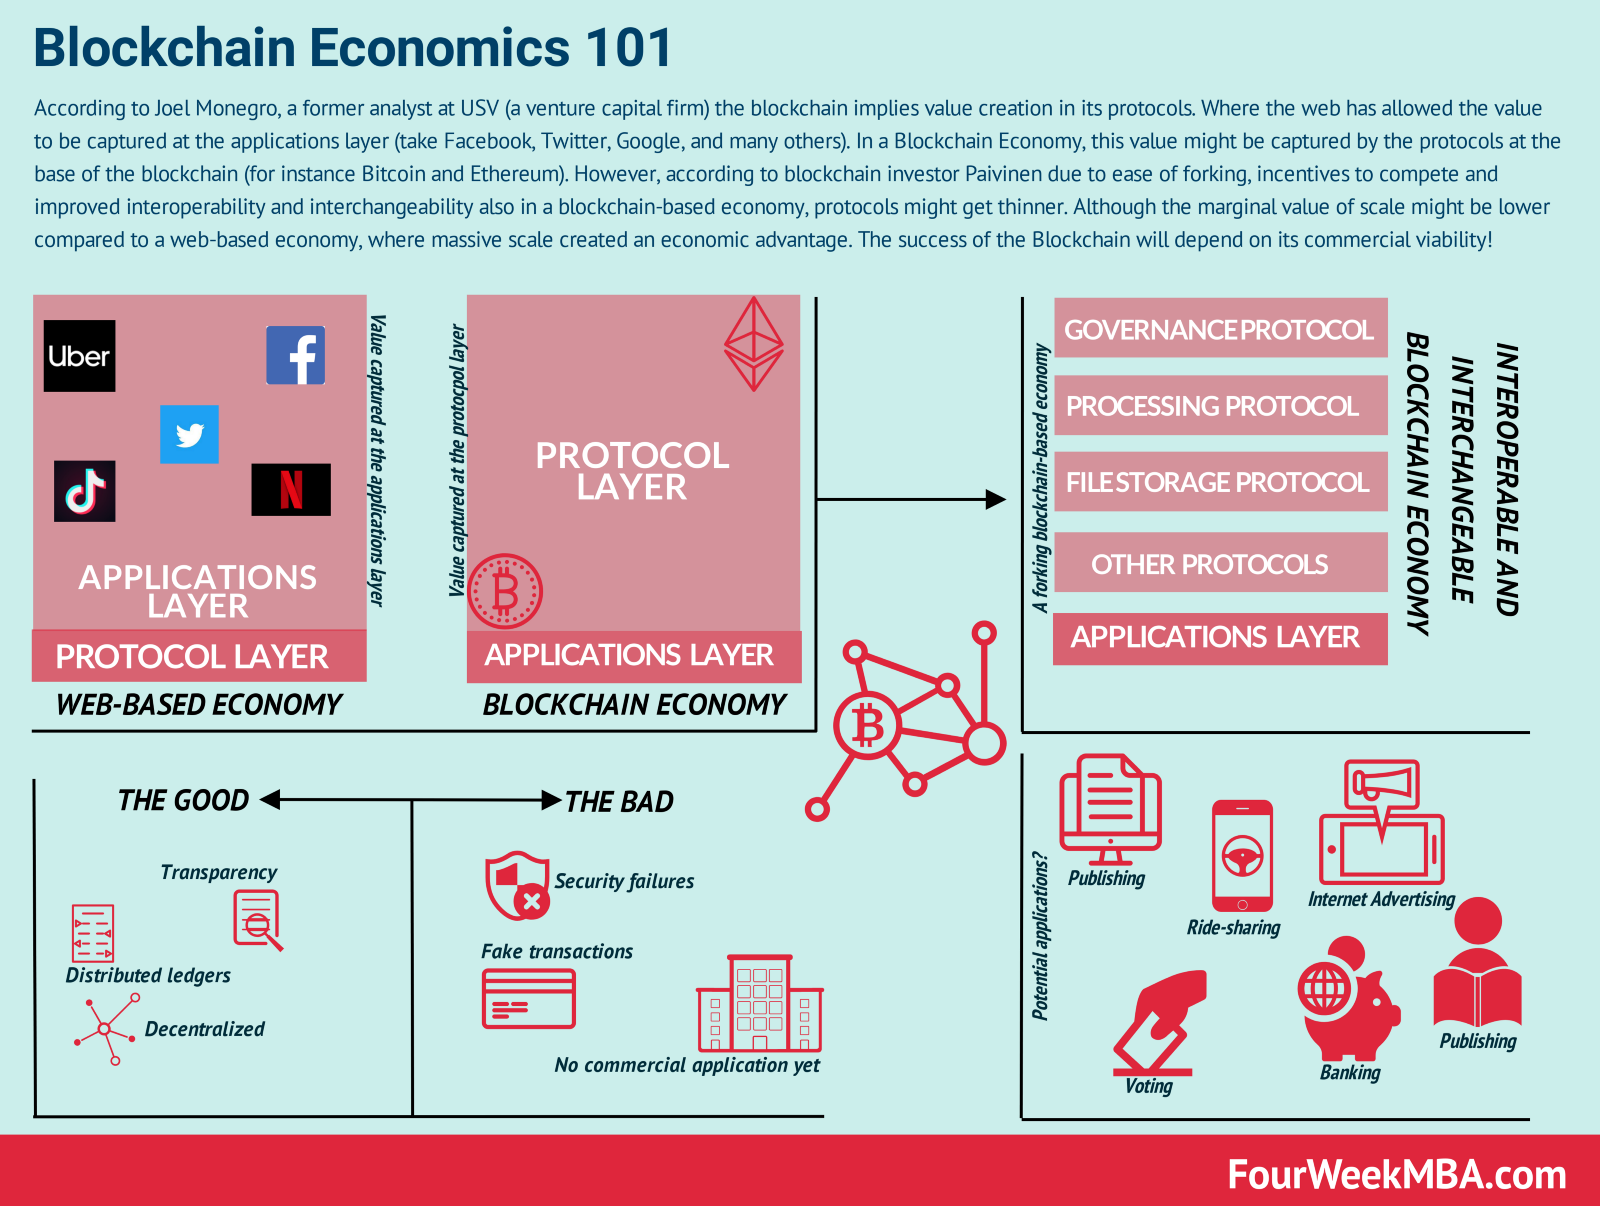 /how-a-world-driven-by-the-blockchain-might-look-like-6ebff6ee3e50 feature image